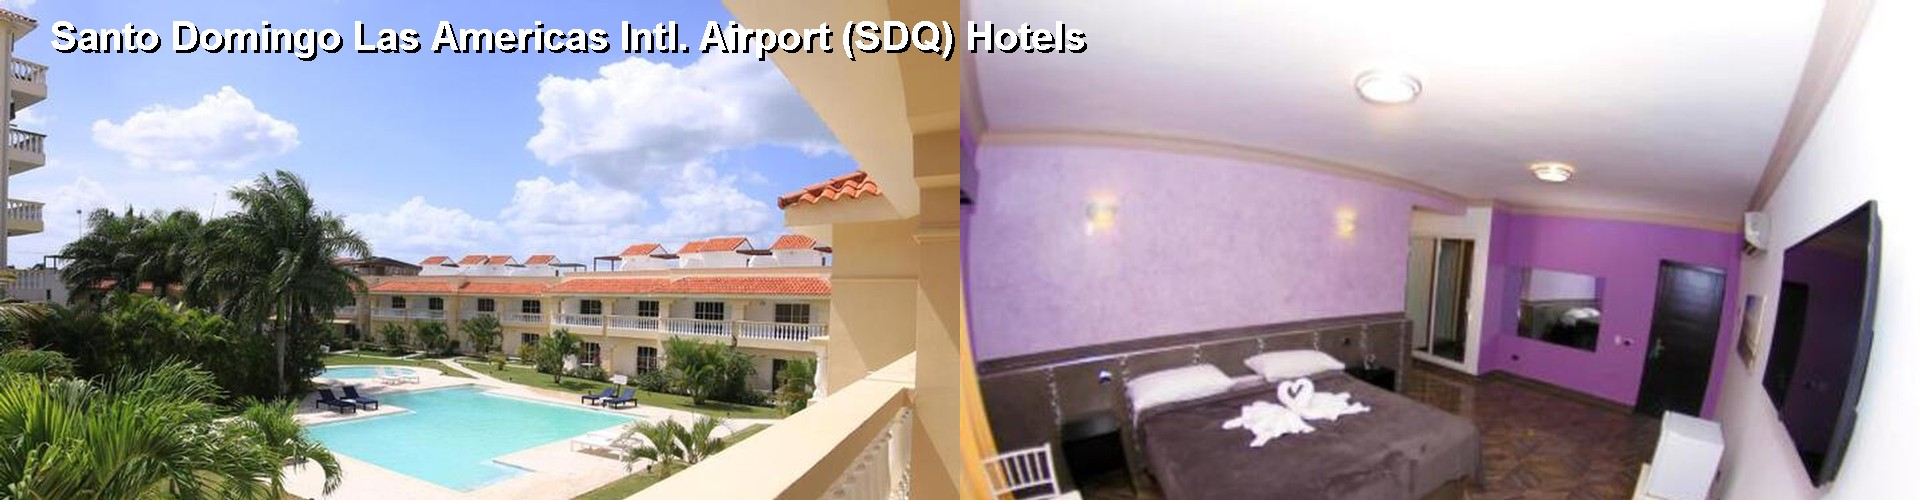 5 Best Hotels Near Santo Domingo Las Americas Intl Airport Sdq